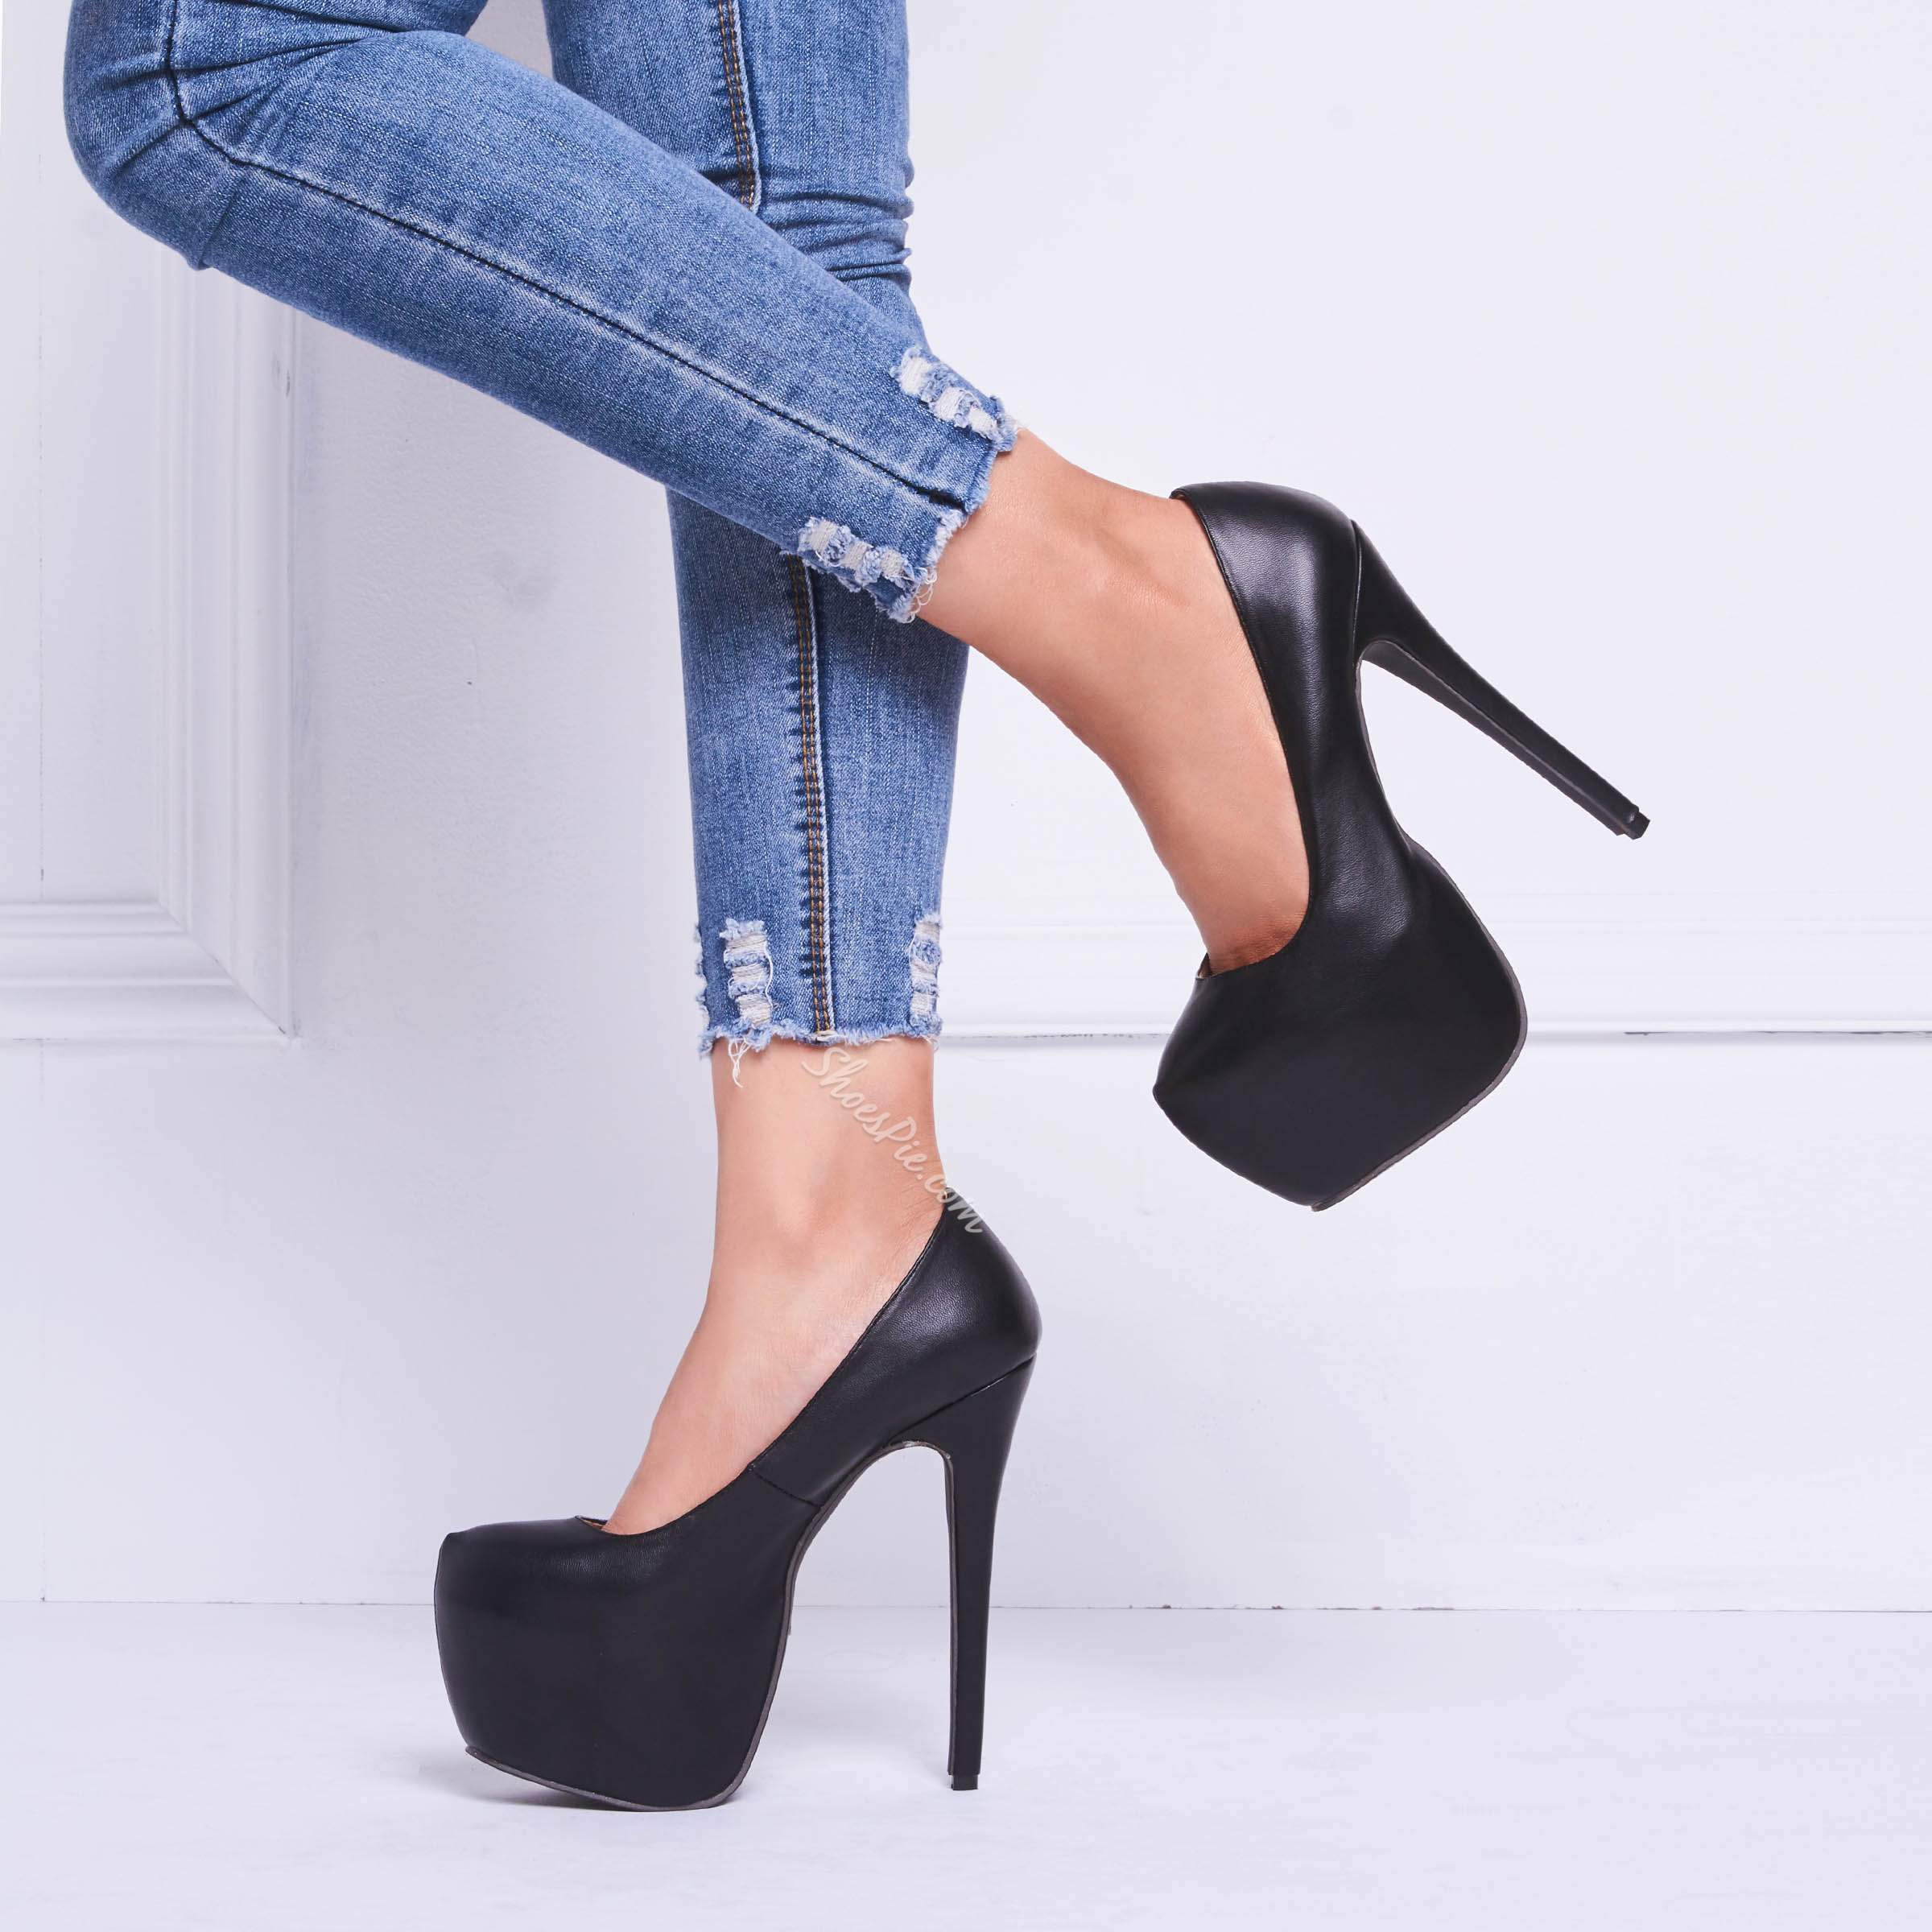 Shoespie Amazing Black Platform Heels